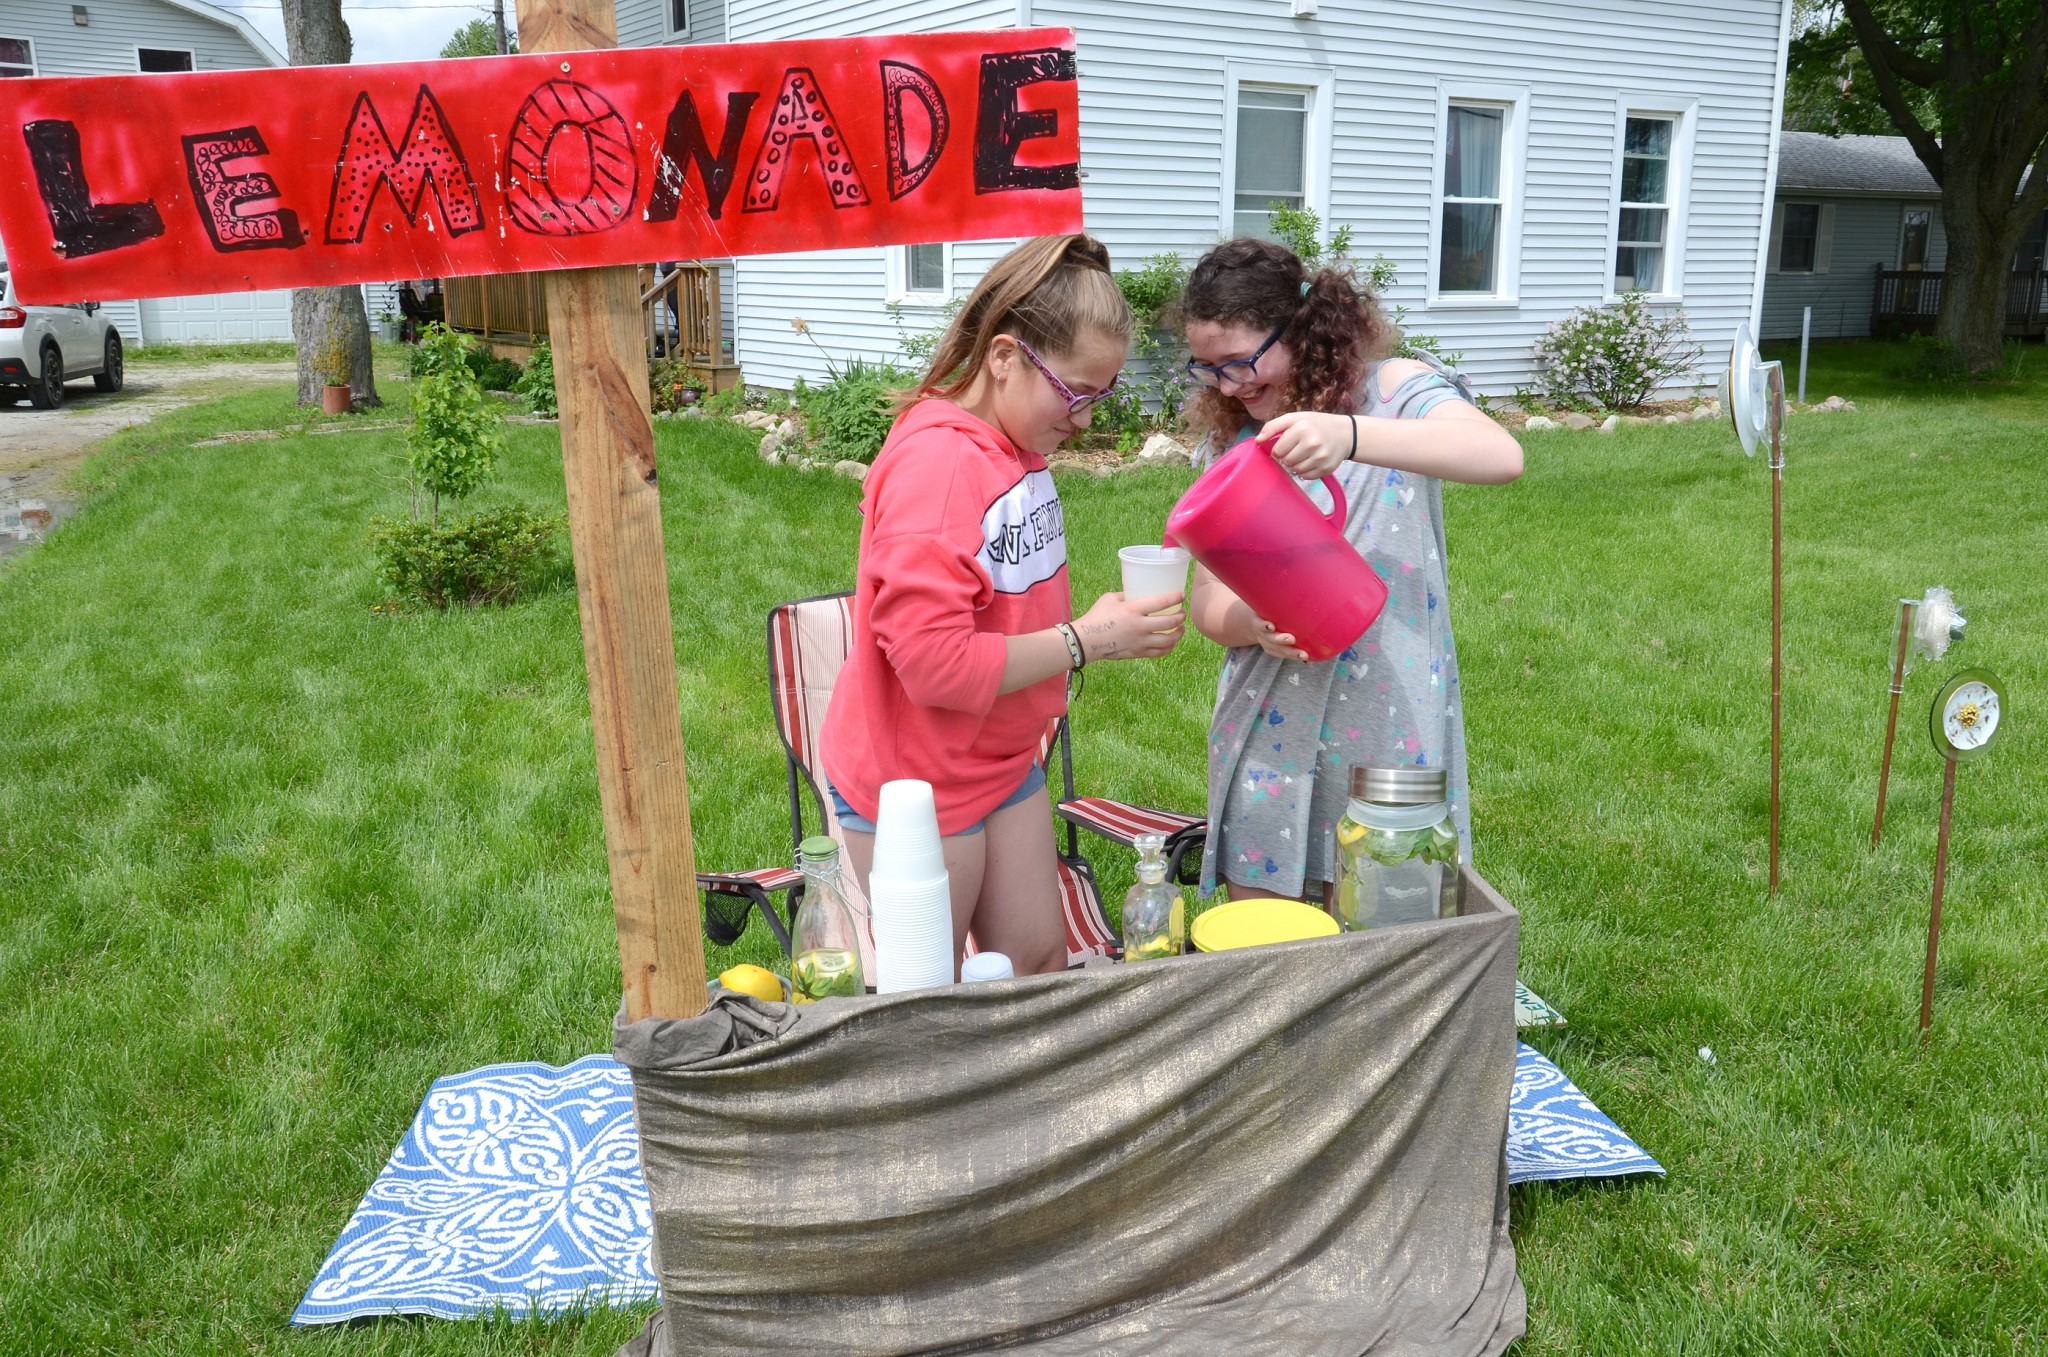 Young entrepreneurs<br />Rylee Harteis, left, and Hailey Biddex are ready for customers at their lemonade stand on State Route 795, Millbury. The two Lake Middle School students made lemonade infused with mint, and also sold cookies. The young entrepreneurs were also looking forward to the last day of school. (Press photo by Ken Grosjean)